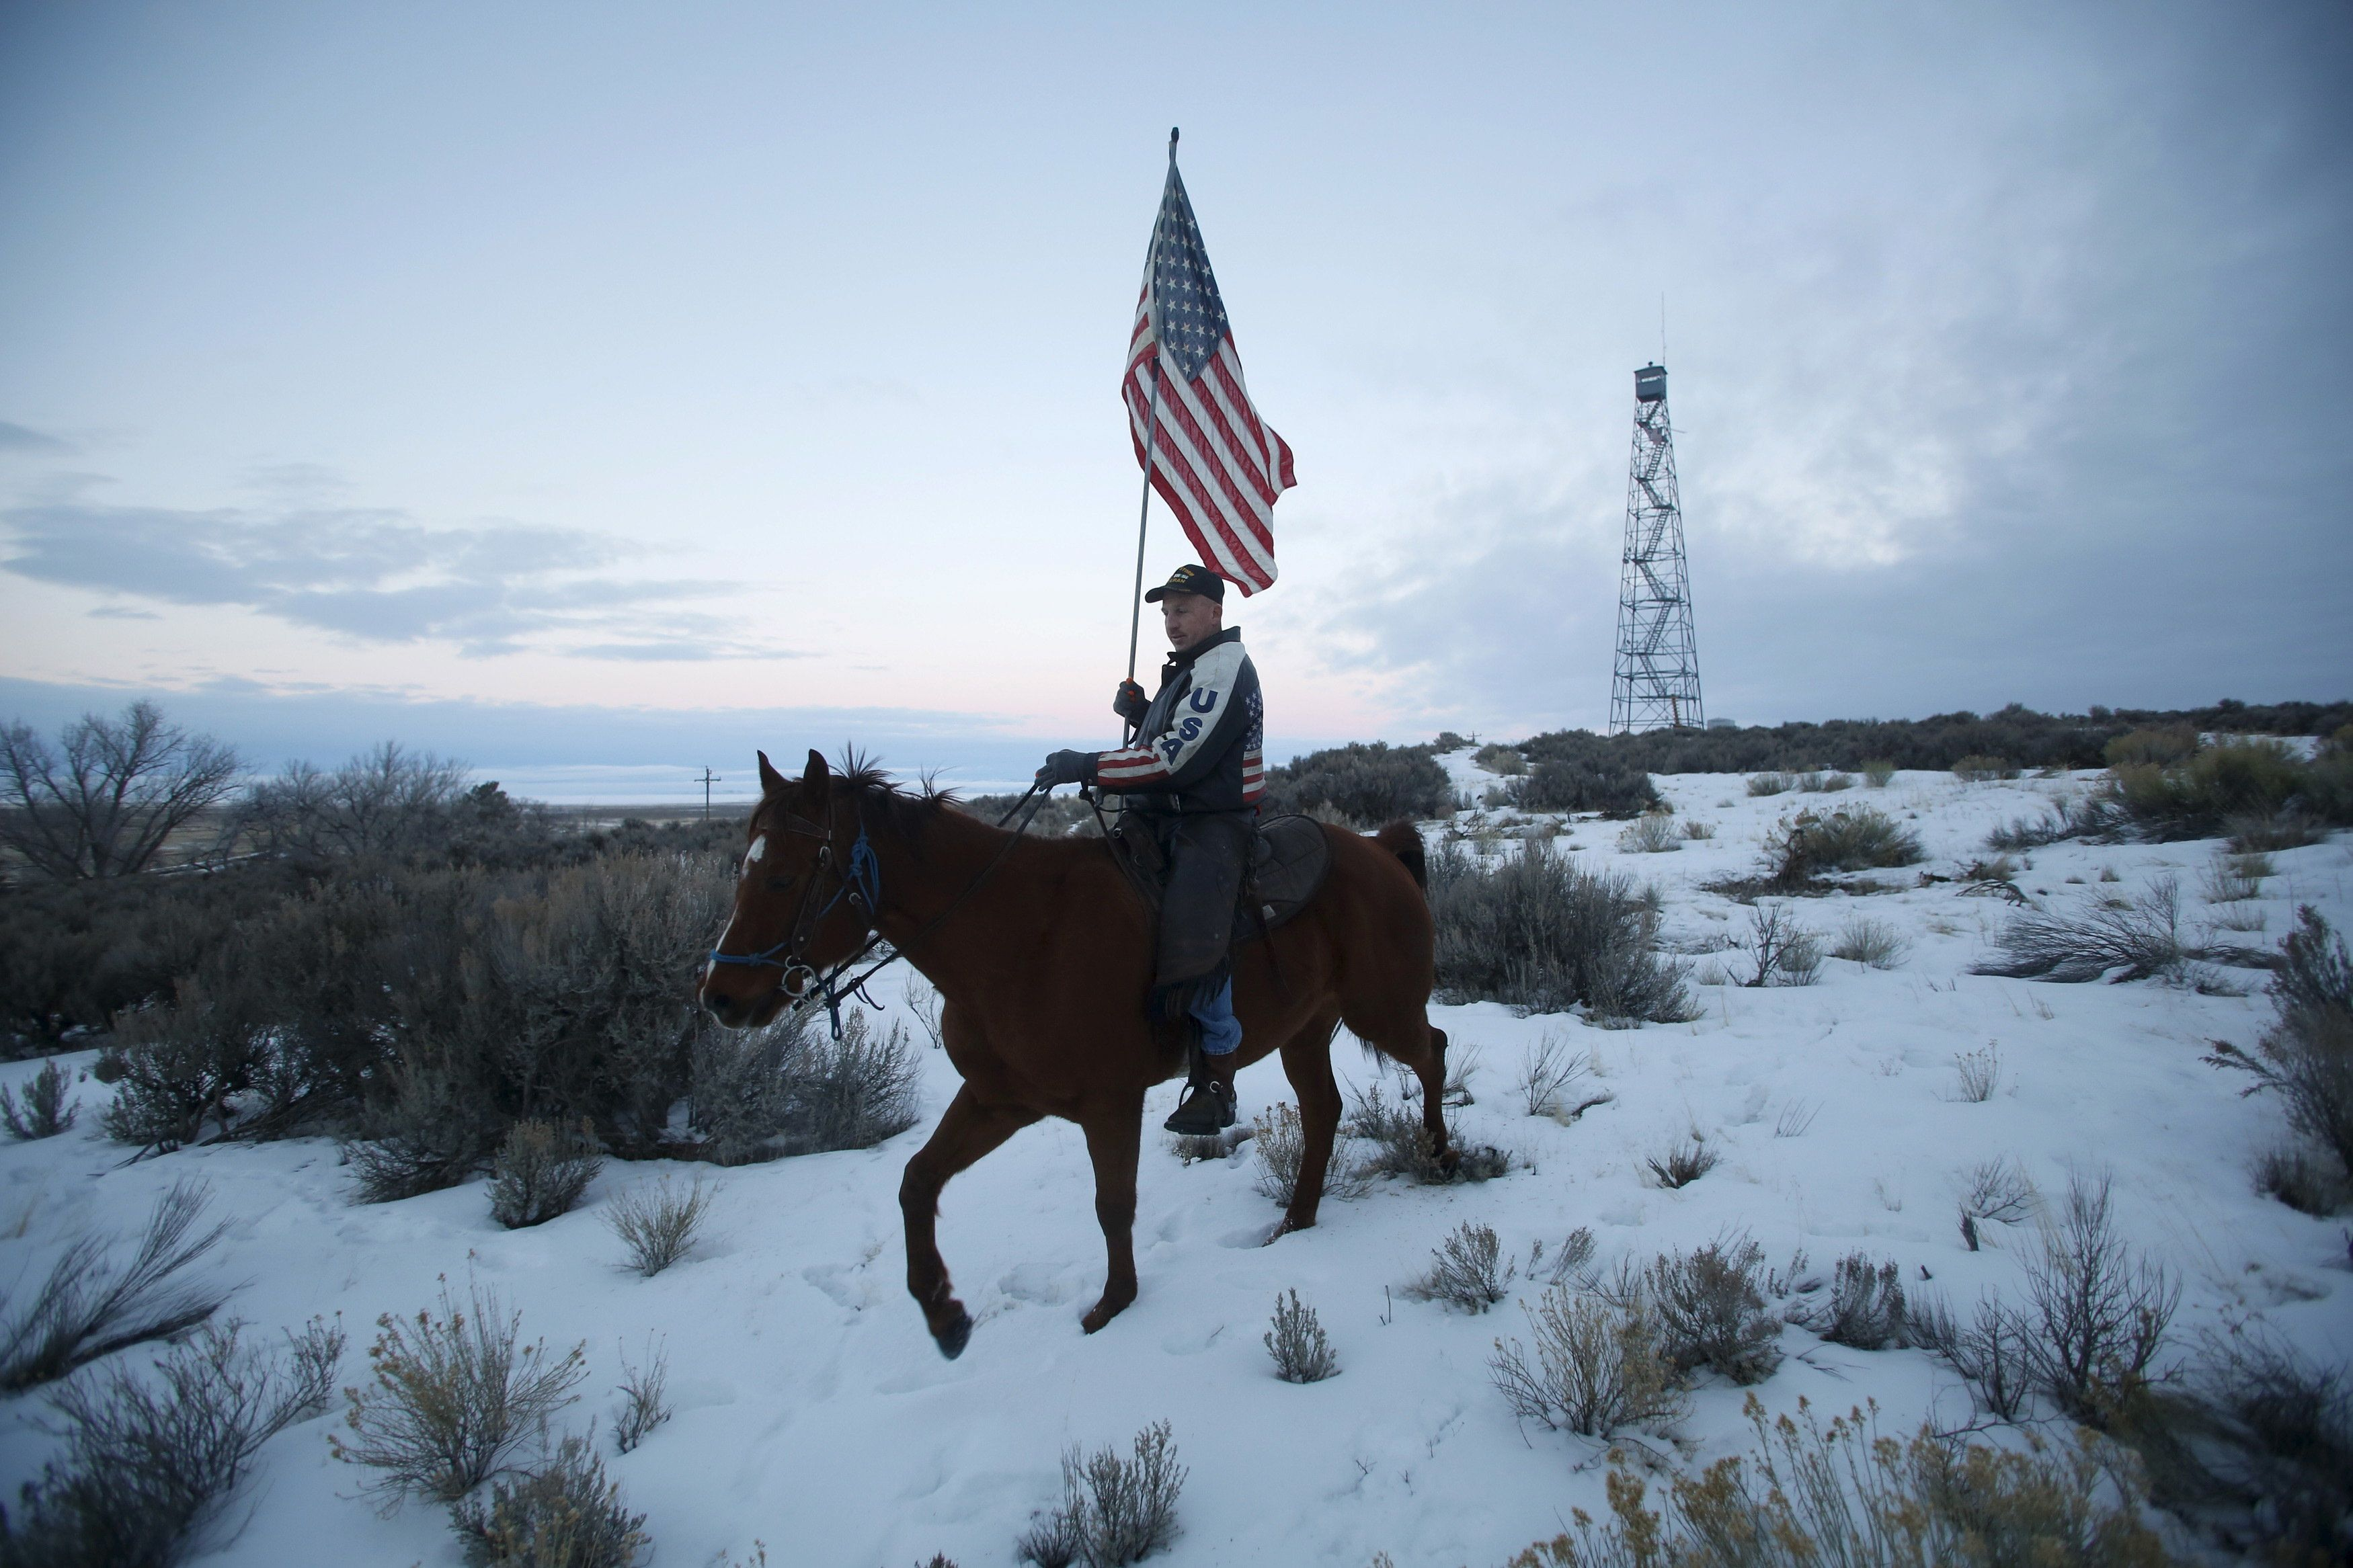 Occupier Duane Ehmer rides his horse Hellboy at Malheur National Wildlife Refuge near Burns, Oregon, January 7, 2016. REUTERS/Jim Urquhart